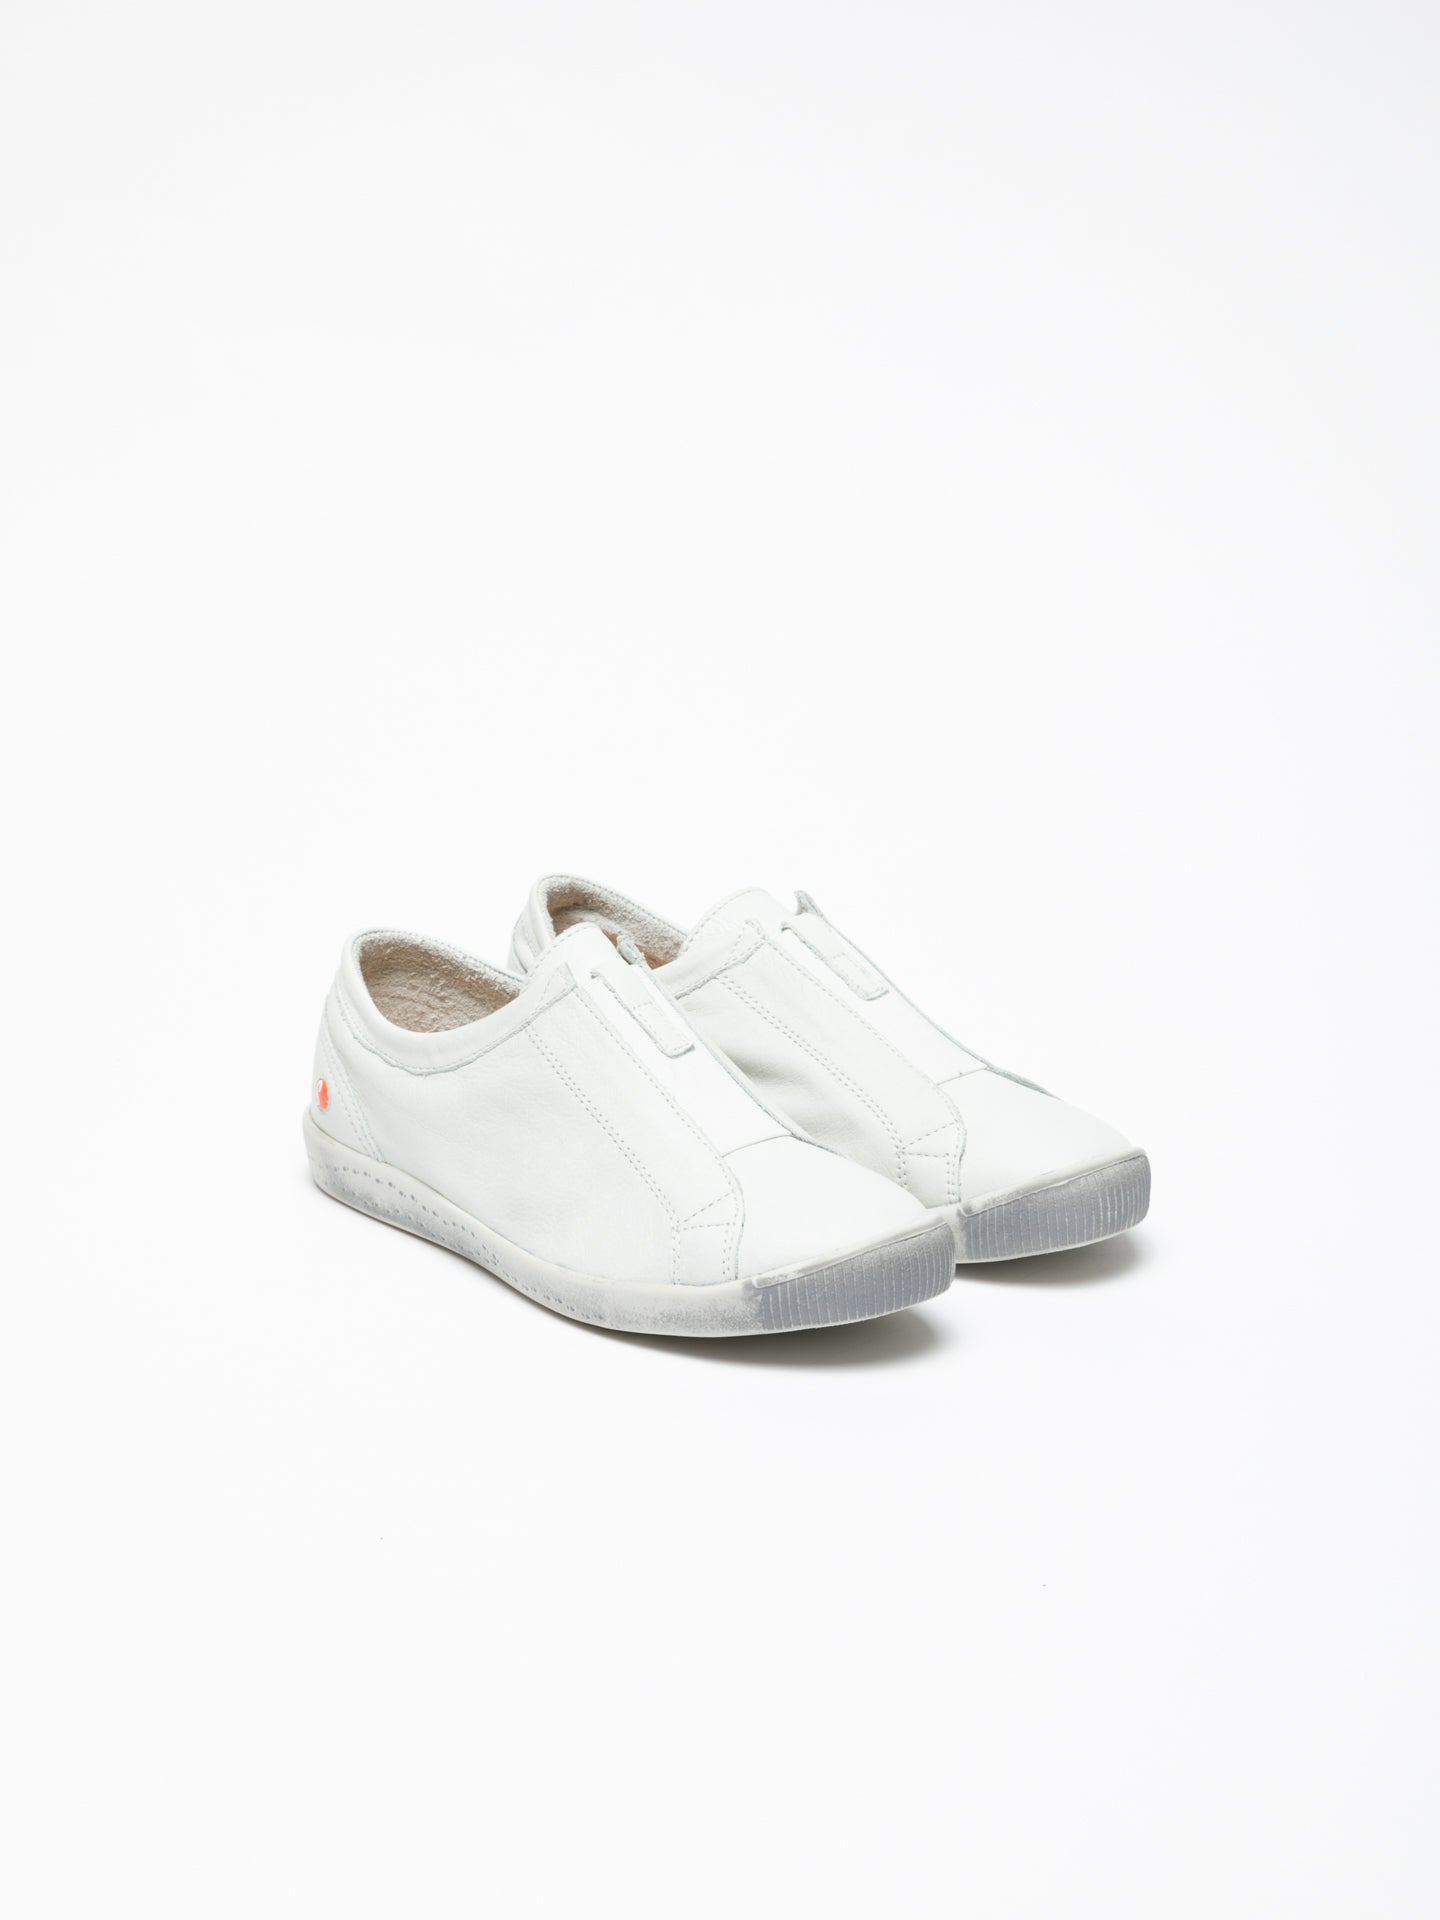 Softinos White Slip-on Sneakers